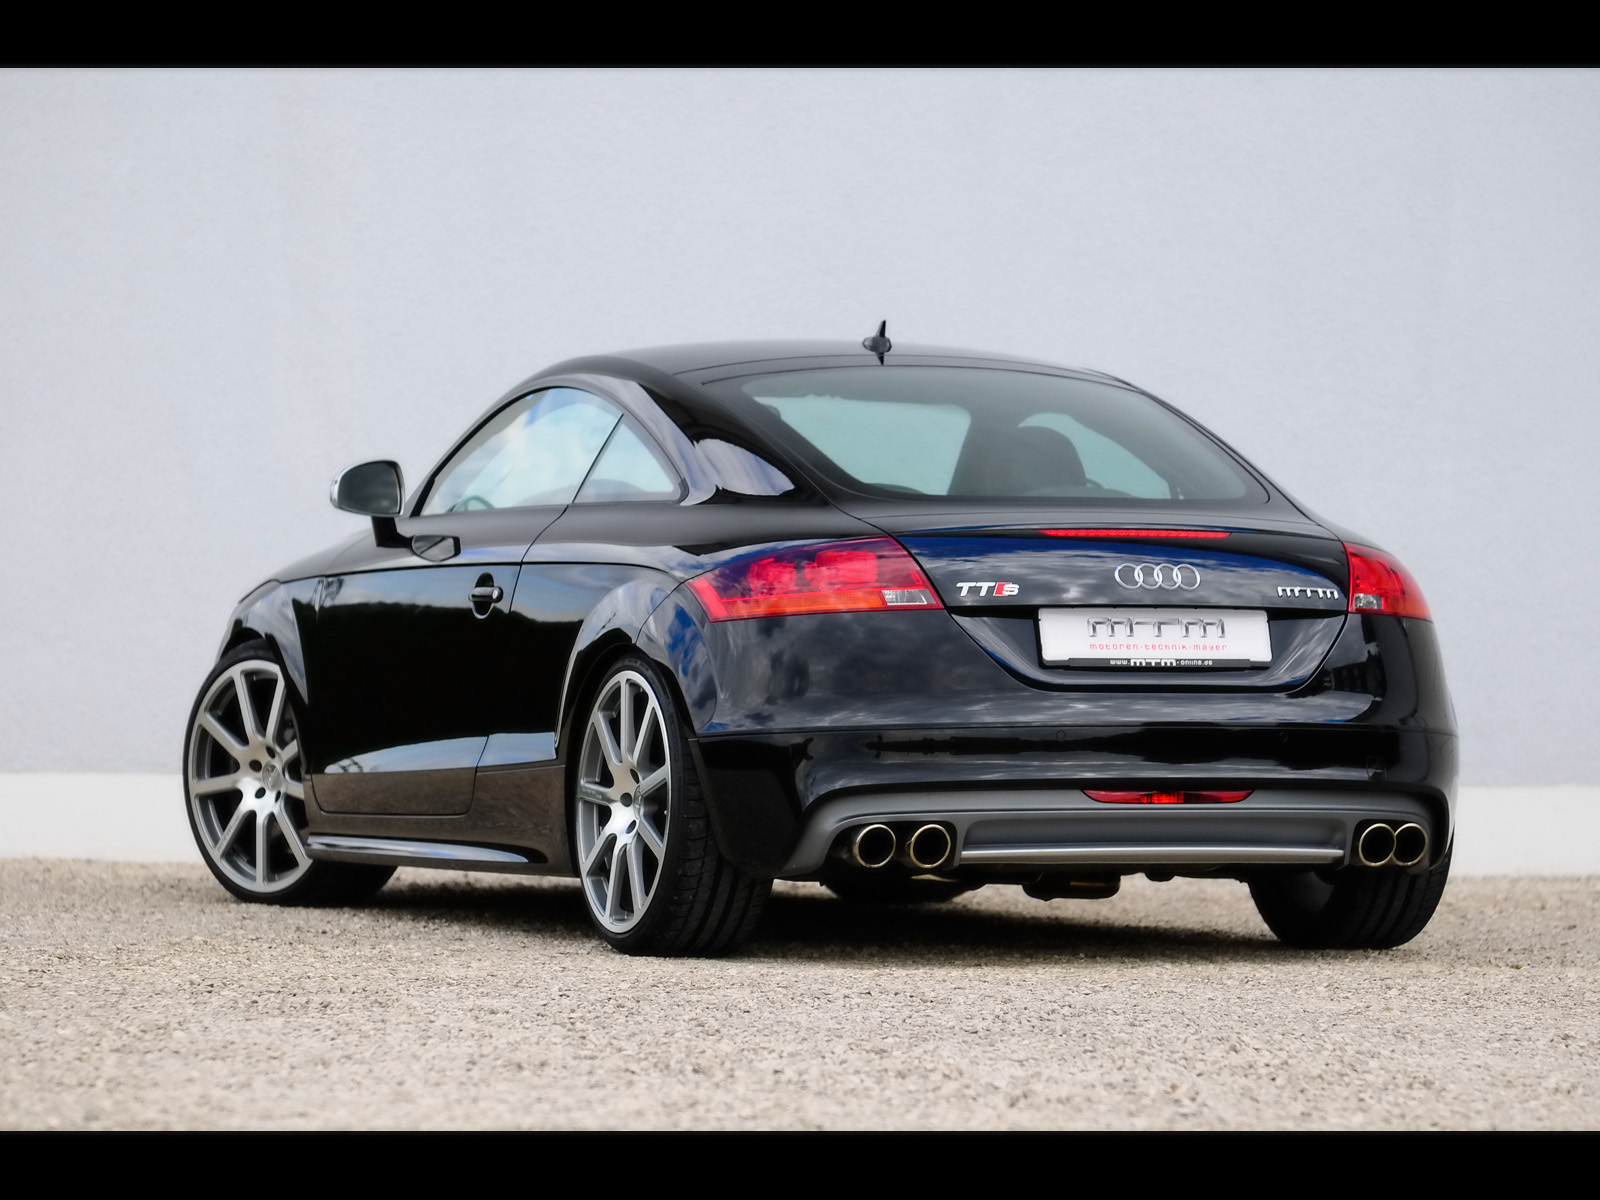 audi tt 2 0 2009 technical specifications interior and exterior photo. Black Bedroom Furniture Sets. Home Design Ideas